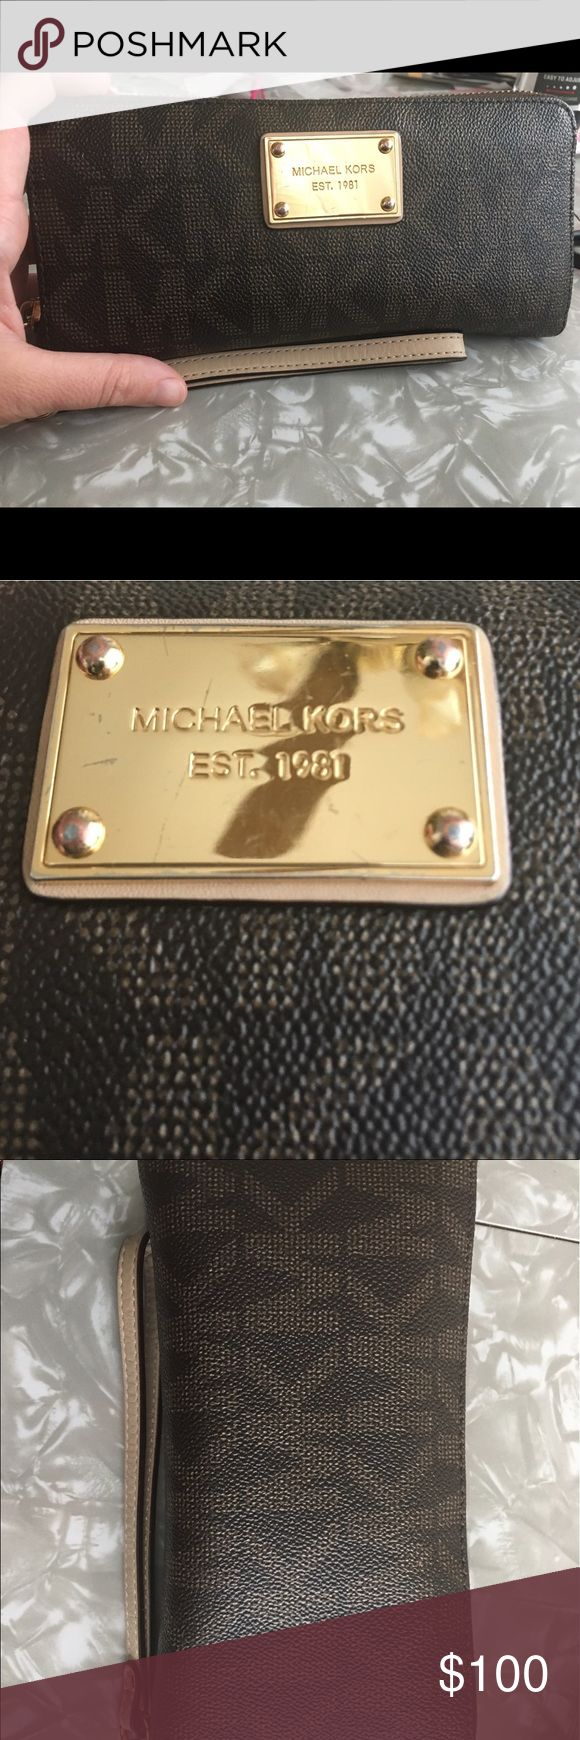 Michael kors jet set wallet Michael kors jet set wallet.  Good condition. A few scratches, see pic. Normal wear and tear, see pics.  Make an offer. Want more pics, just ask 🙂 KORS Michael Kors Bags Wallets